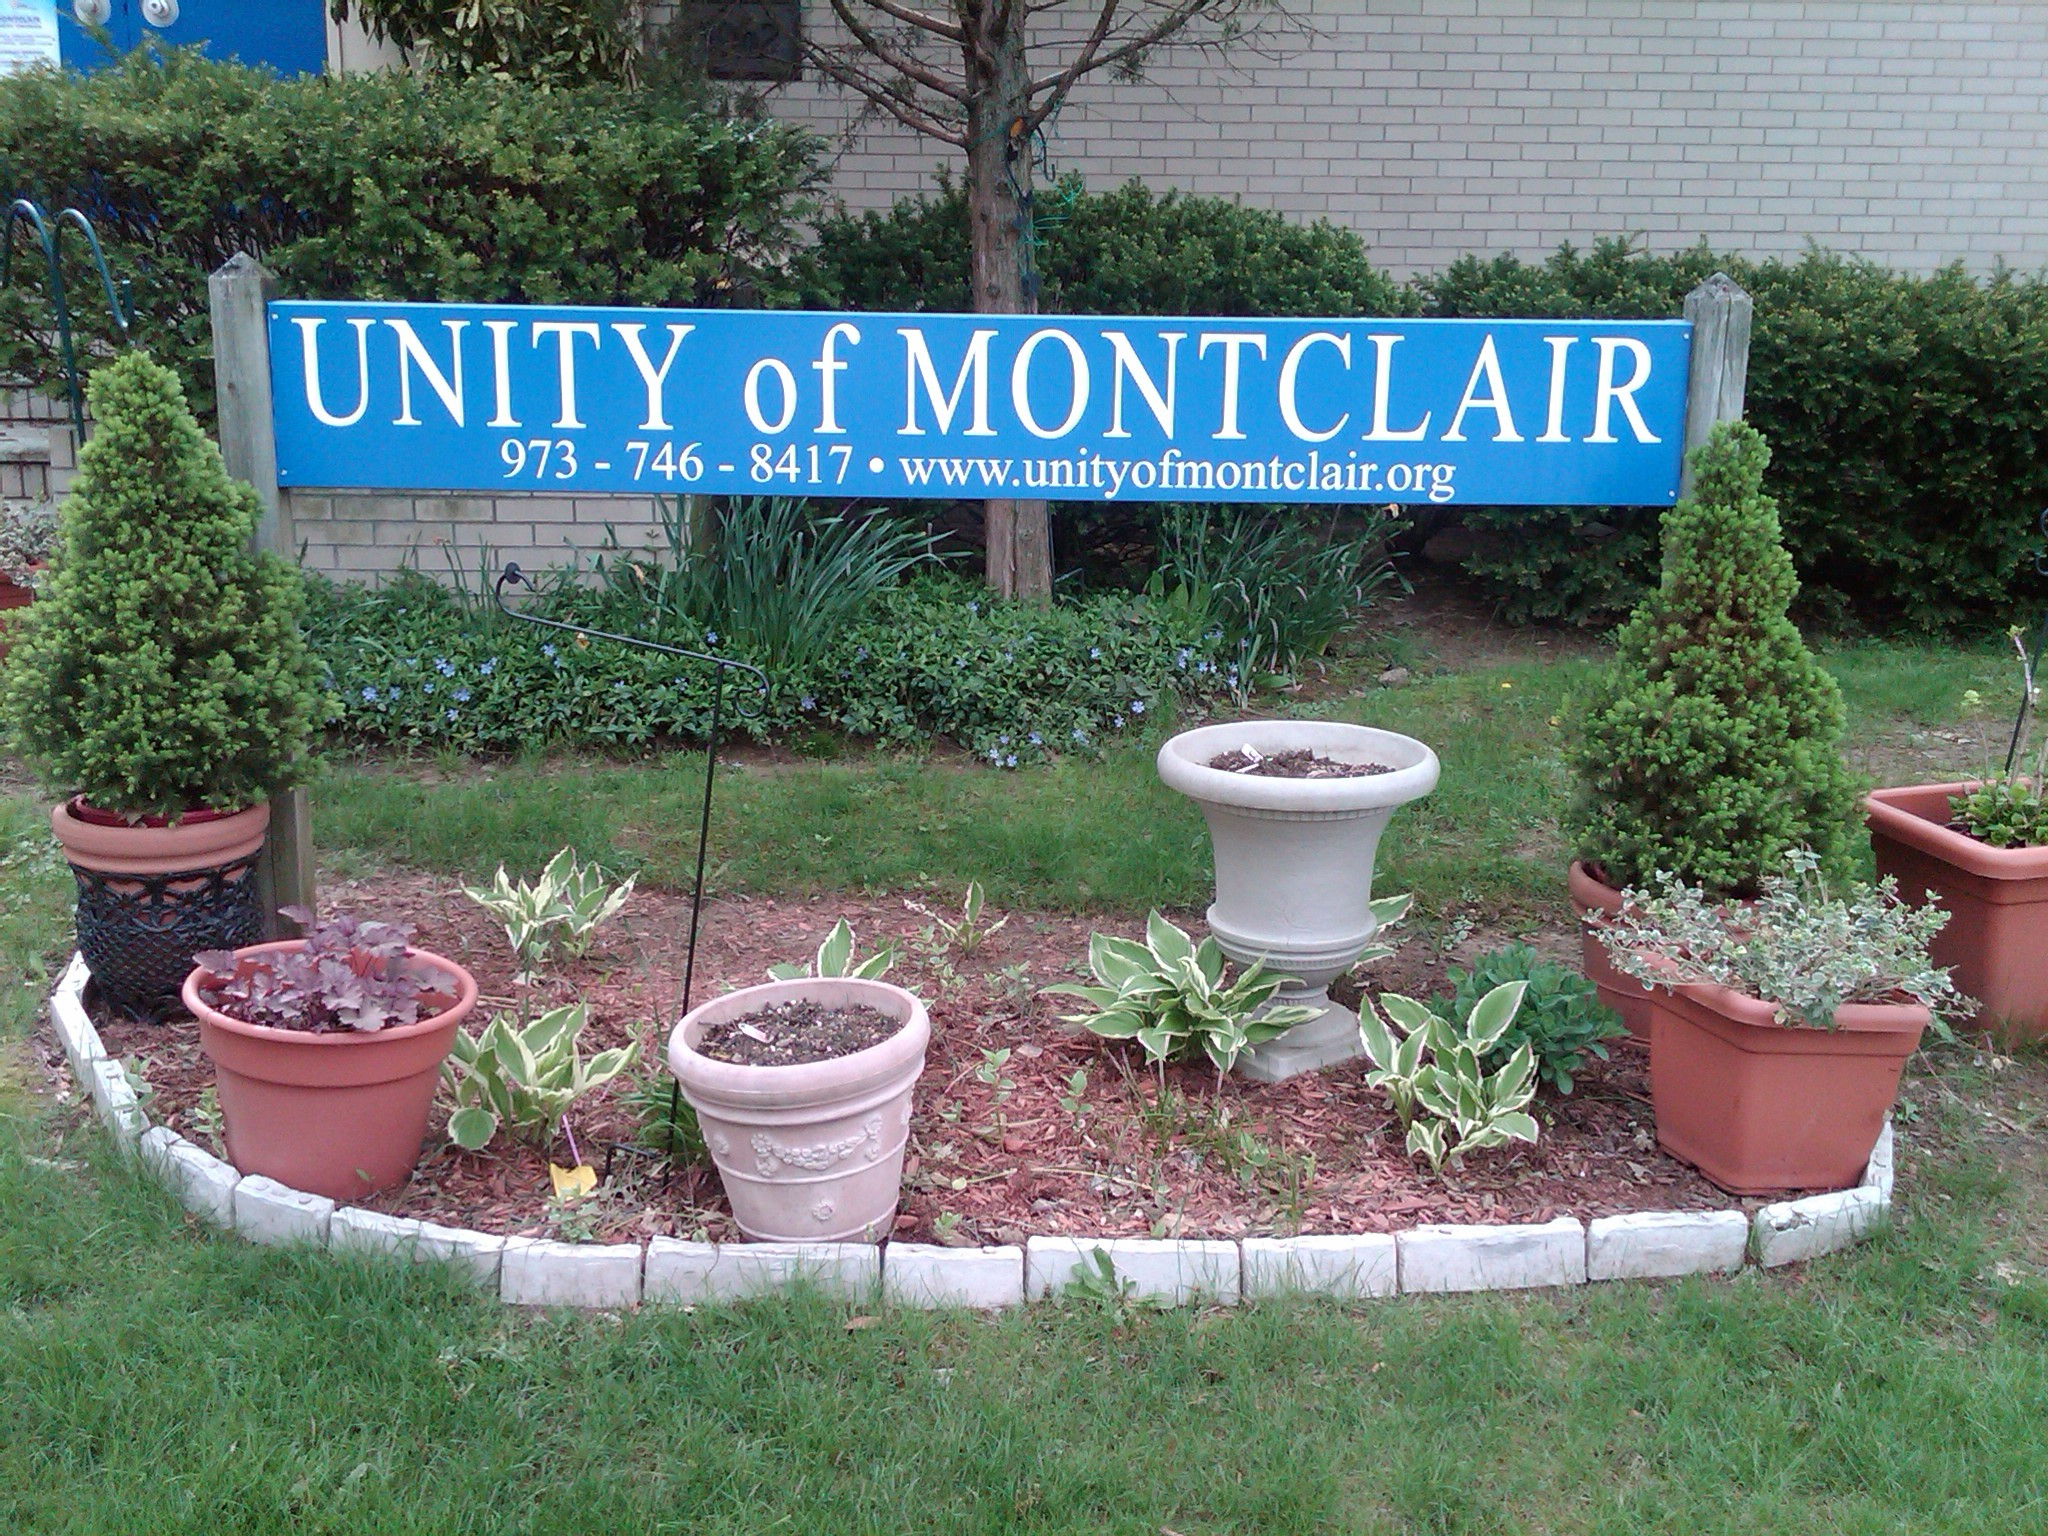 7382d18f0c95c180d69a_2011-04-24_unity_of_montclair_sign_img00052-20110501-1523.jpg